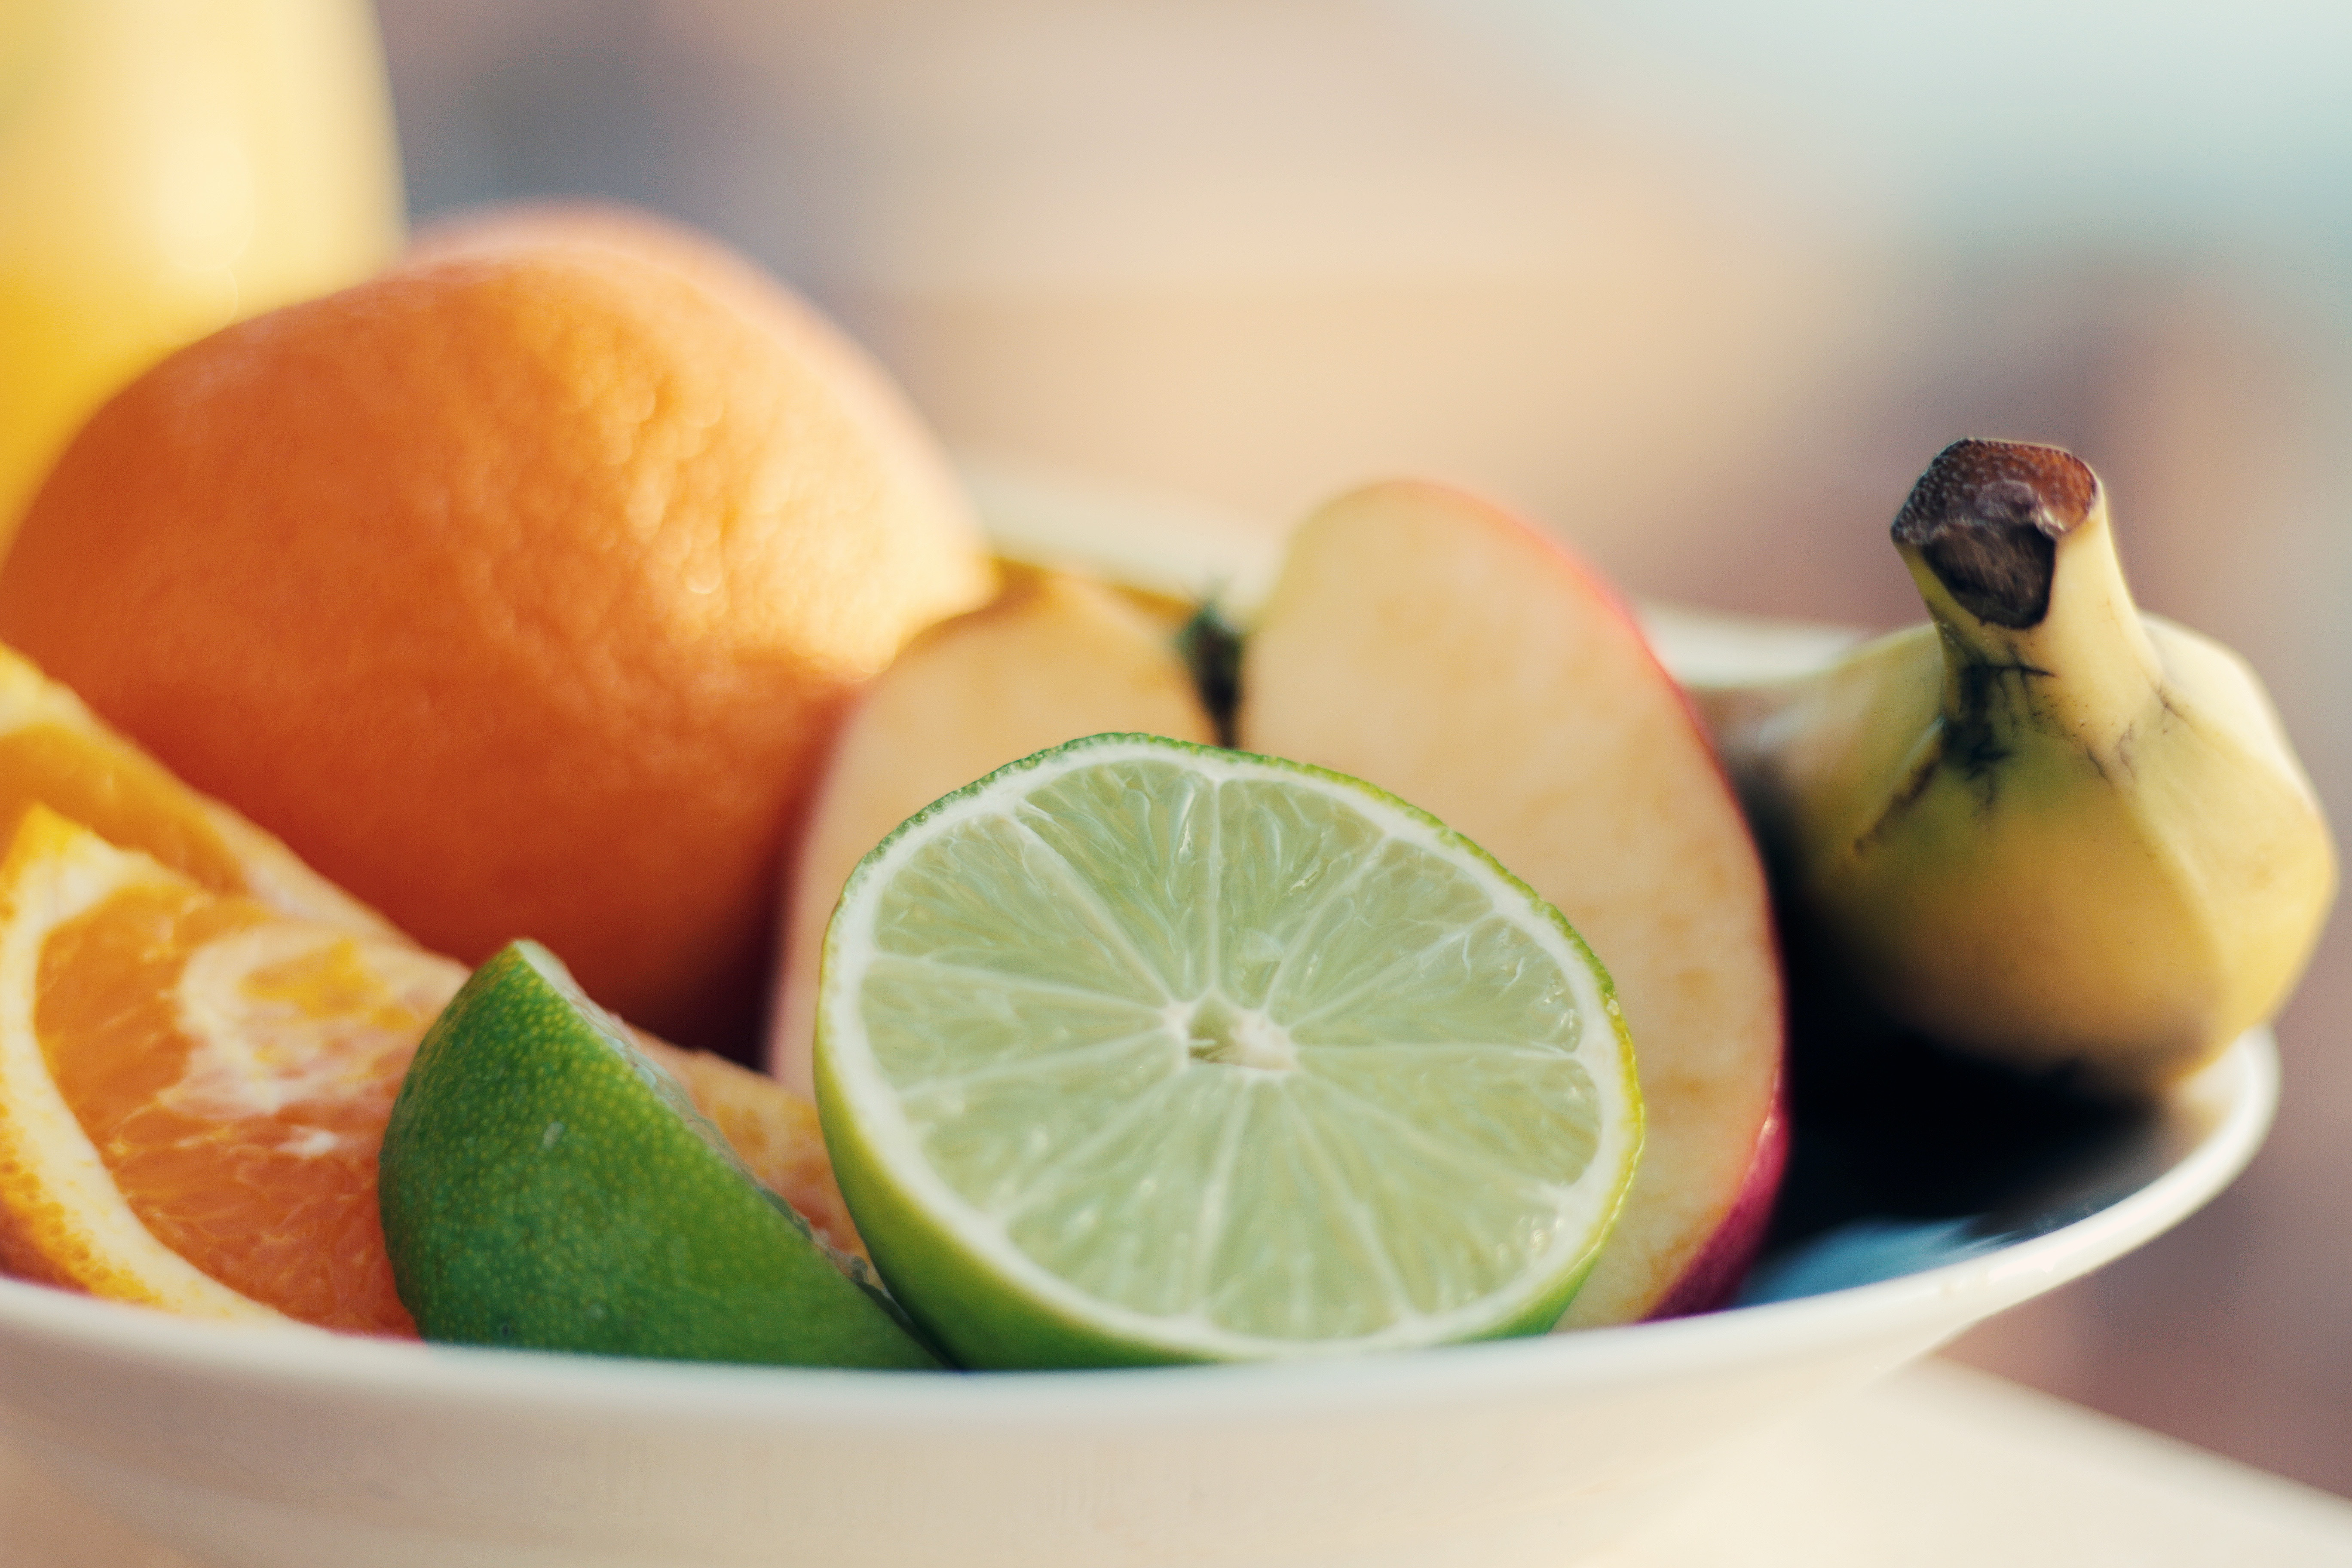 131654 download wallpaper Fruits, Food, Lime, Slicing, Rifling screensavers and pictures for free